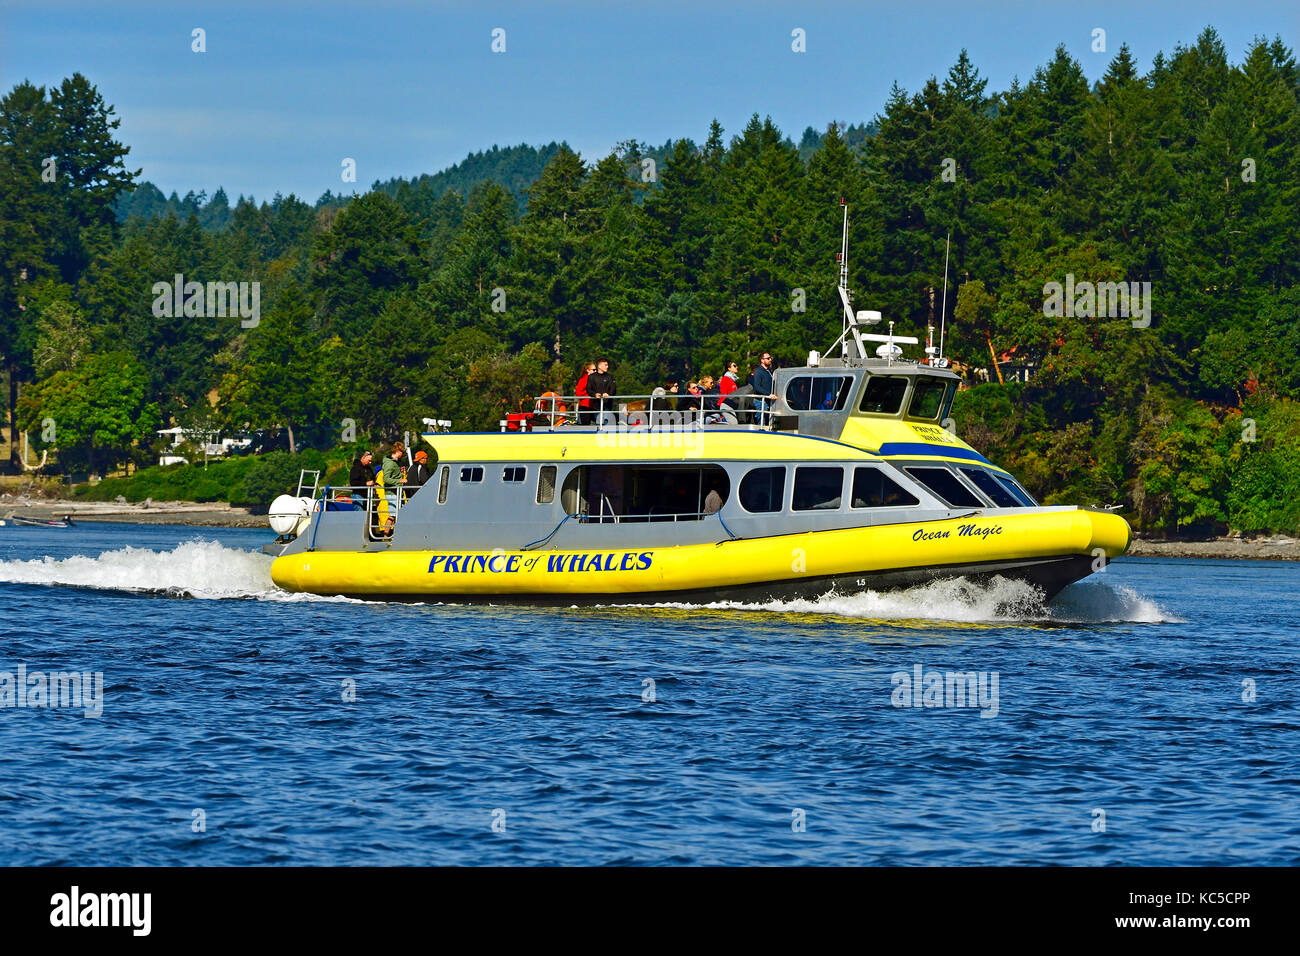 A side view of an eco tour whale watching vessel with it's load of tourists in search of a pod of killer whales - Stock Image